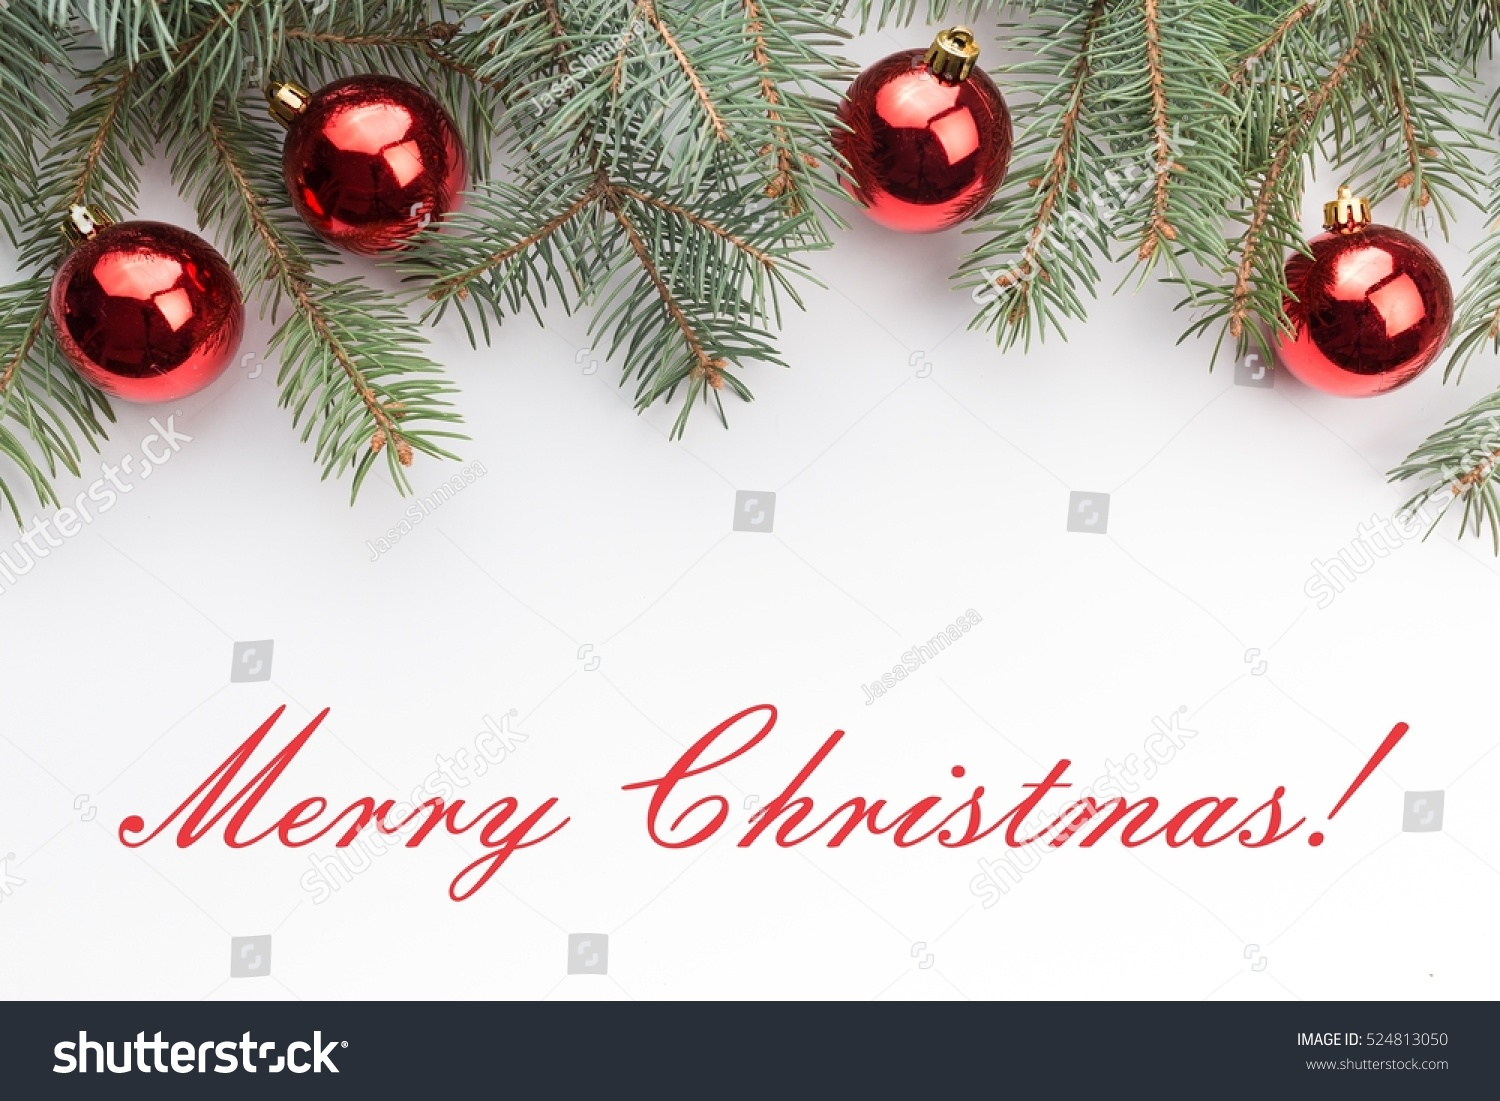 Christmas Decoration Background Message Merry Christmas Stock Photo ...